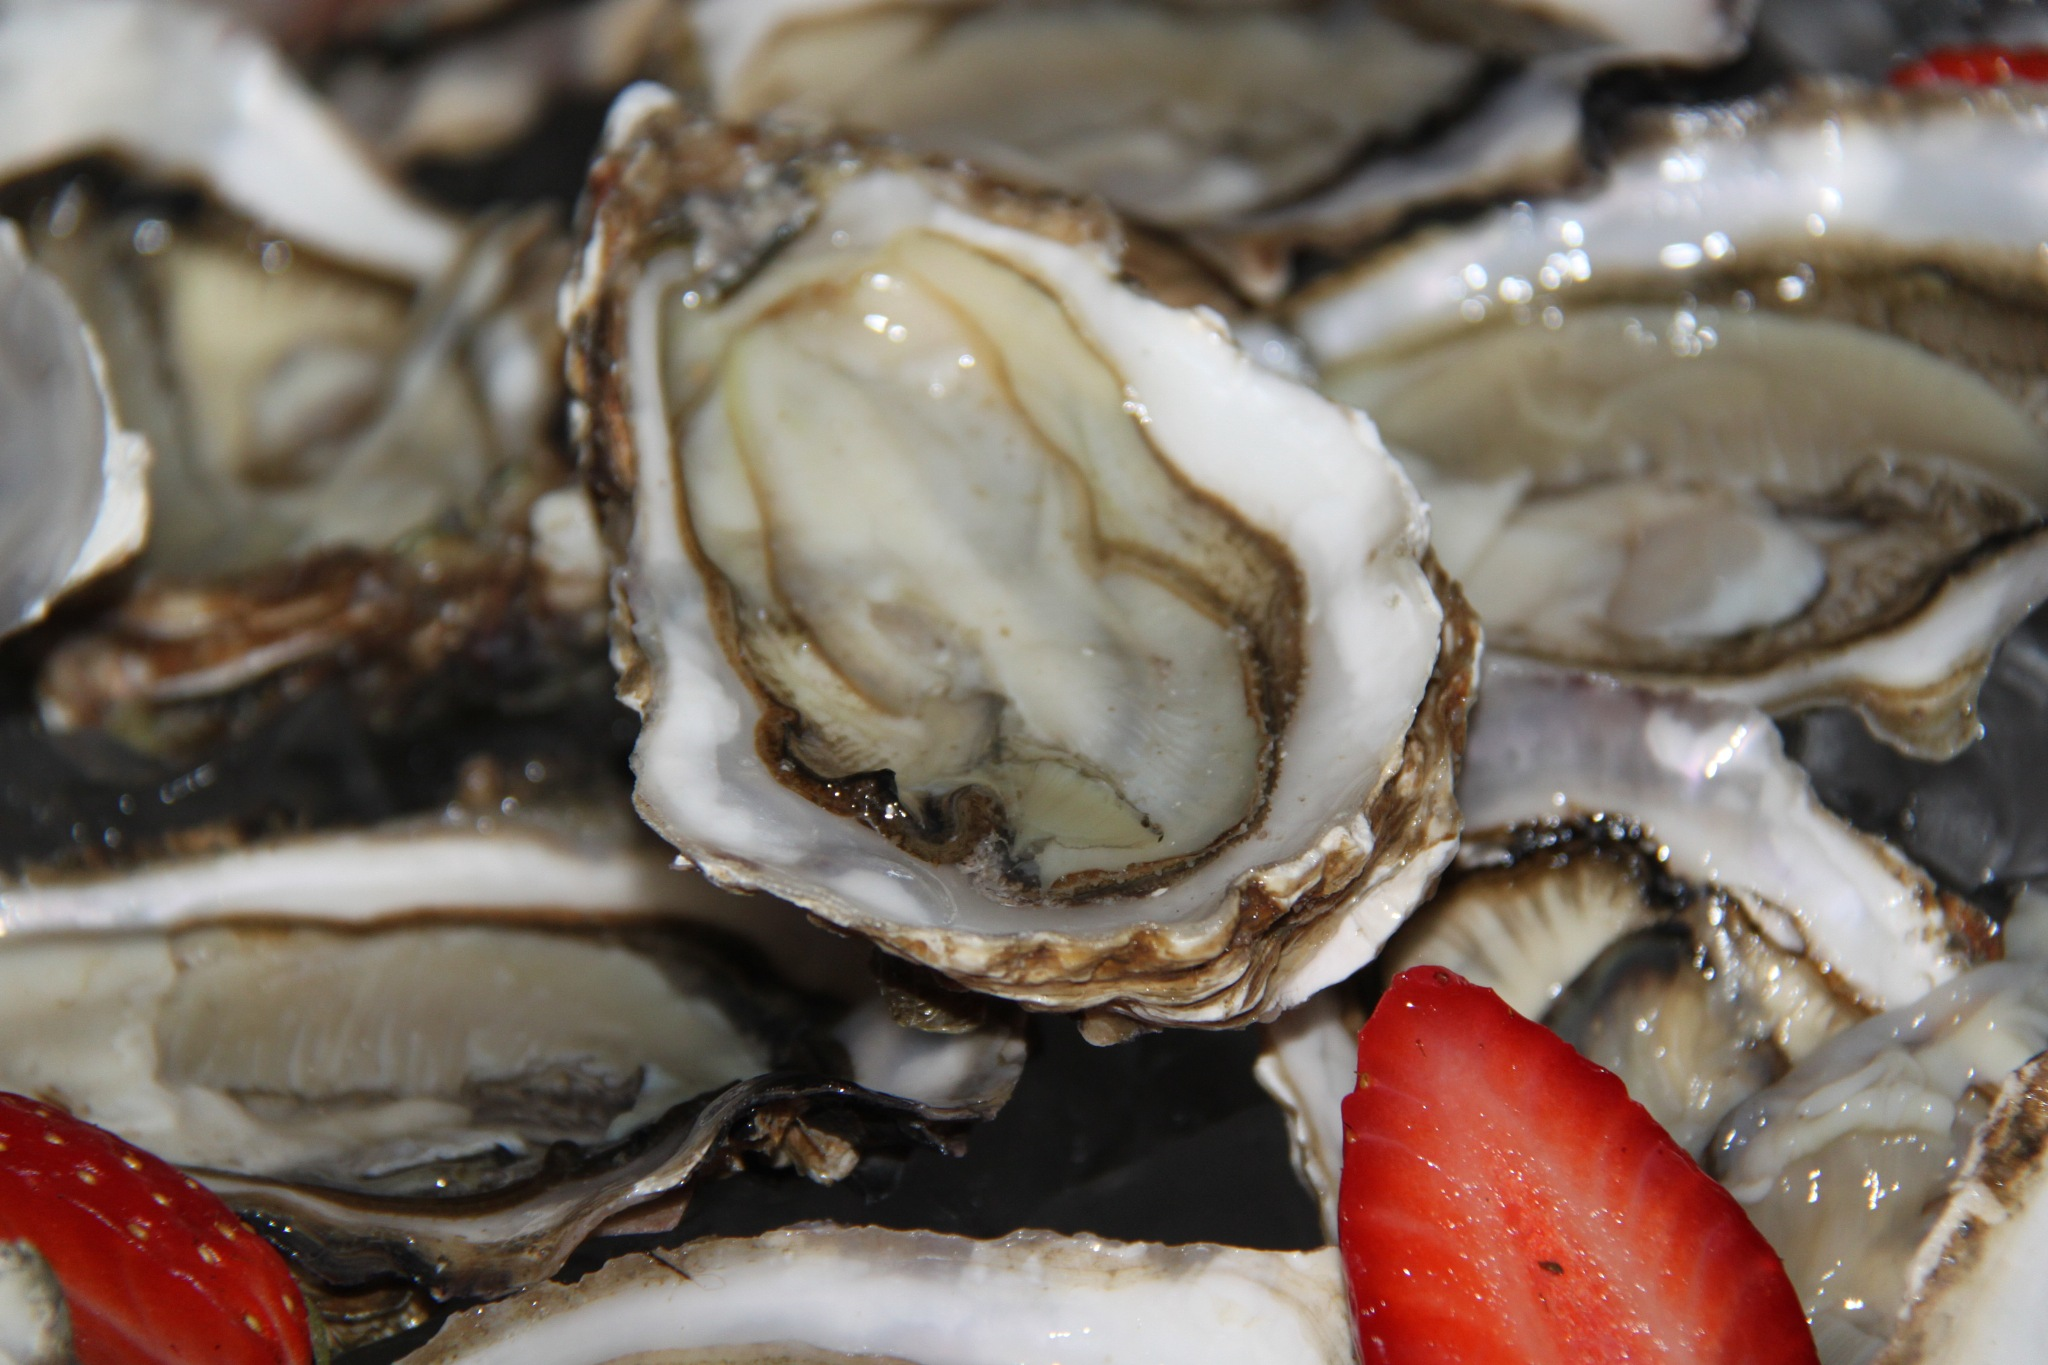 Oysters by Eassa